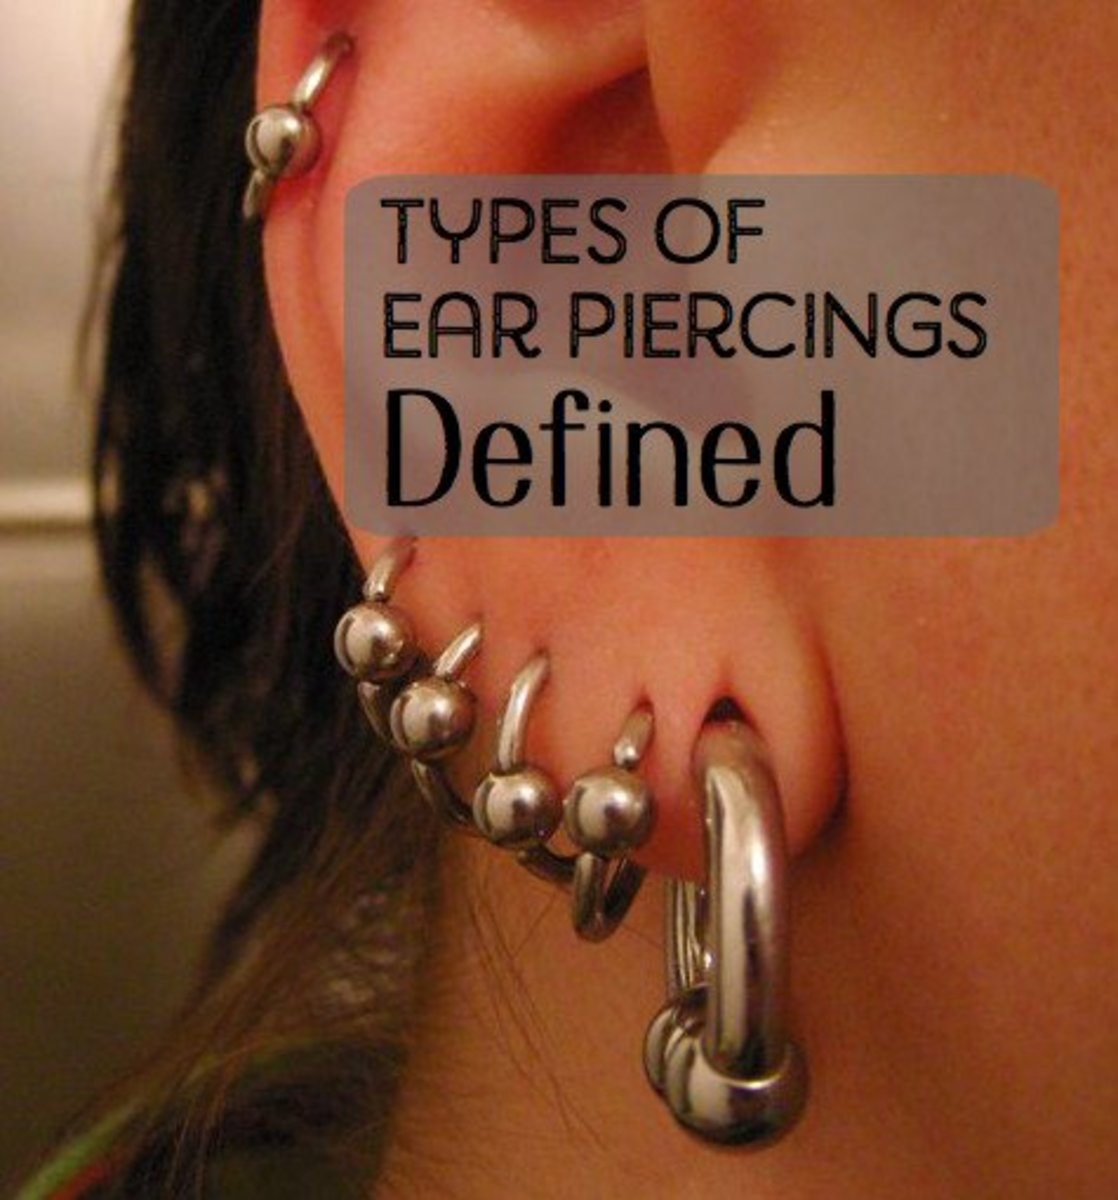 Find out where tragus, anti-tragus, conch, and daith piercings are and how long they take to heal.